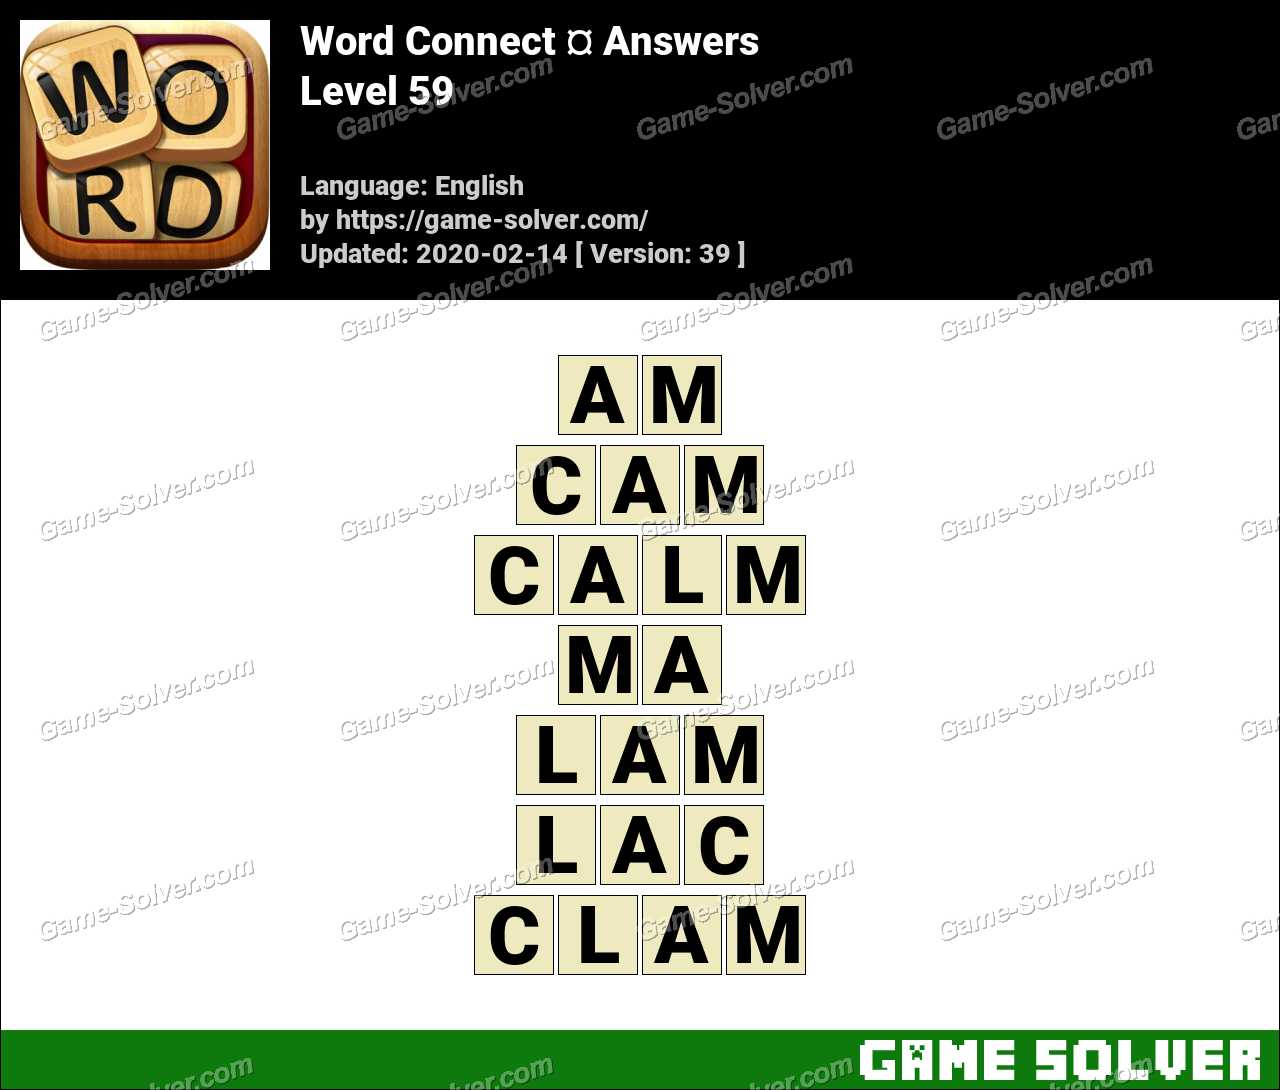 Word Connect Level 59 Answers